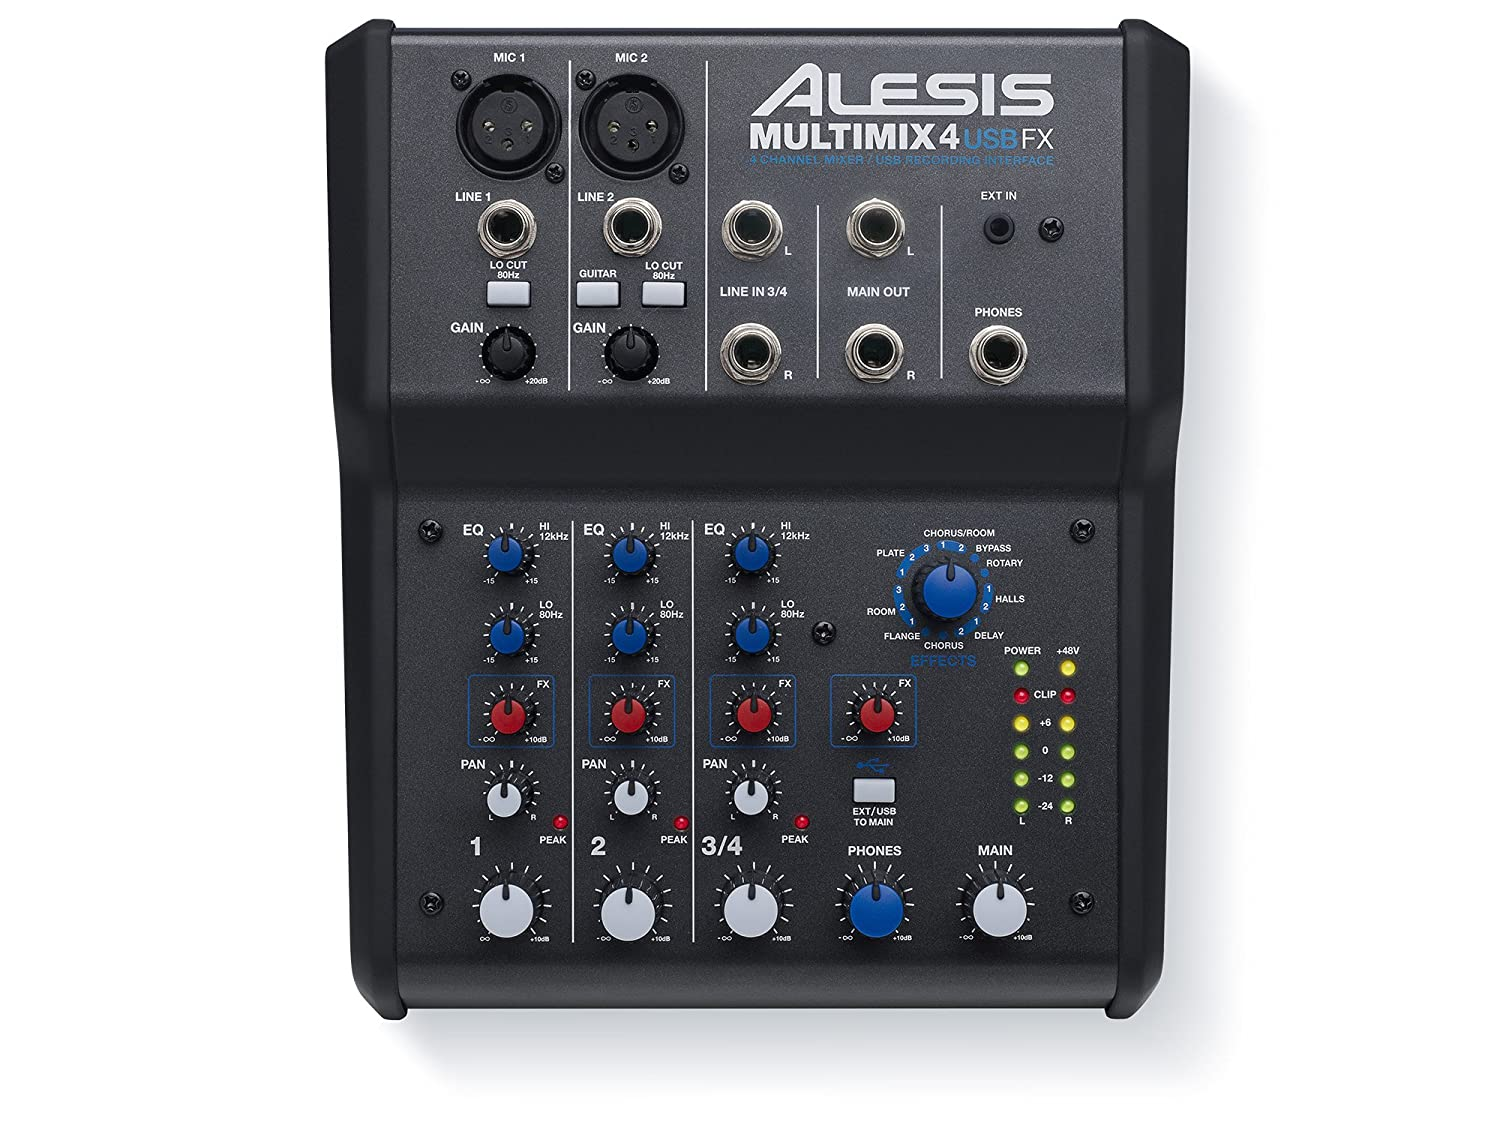 Alesis Multimix 8 Usb Fx Channel Mixer With Effects Microphone Xlr Wiring Diagram Audio Interface Musical Instruments